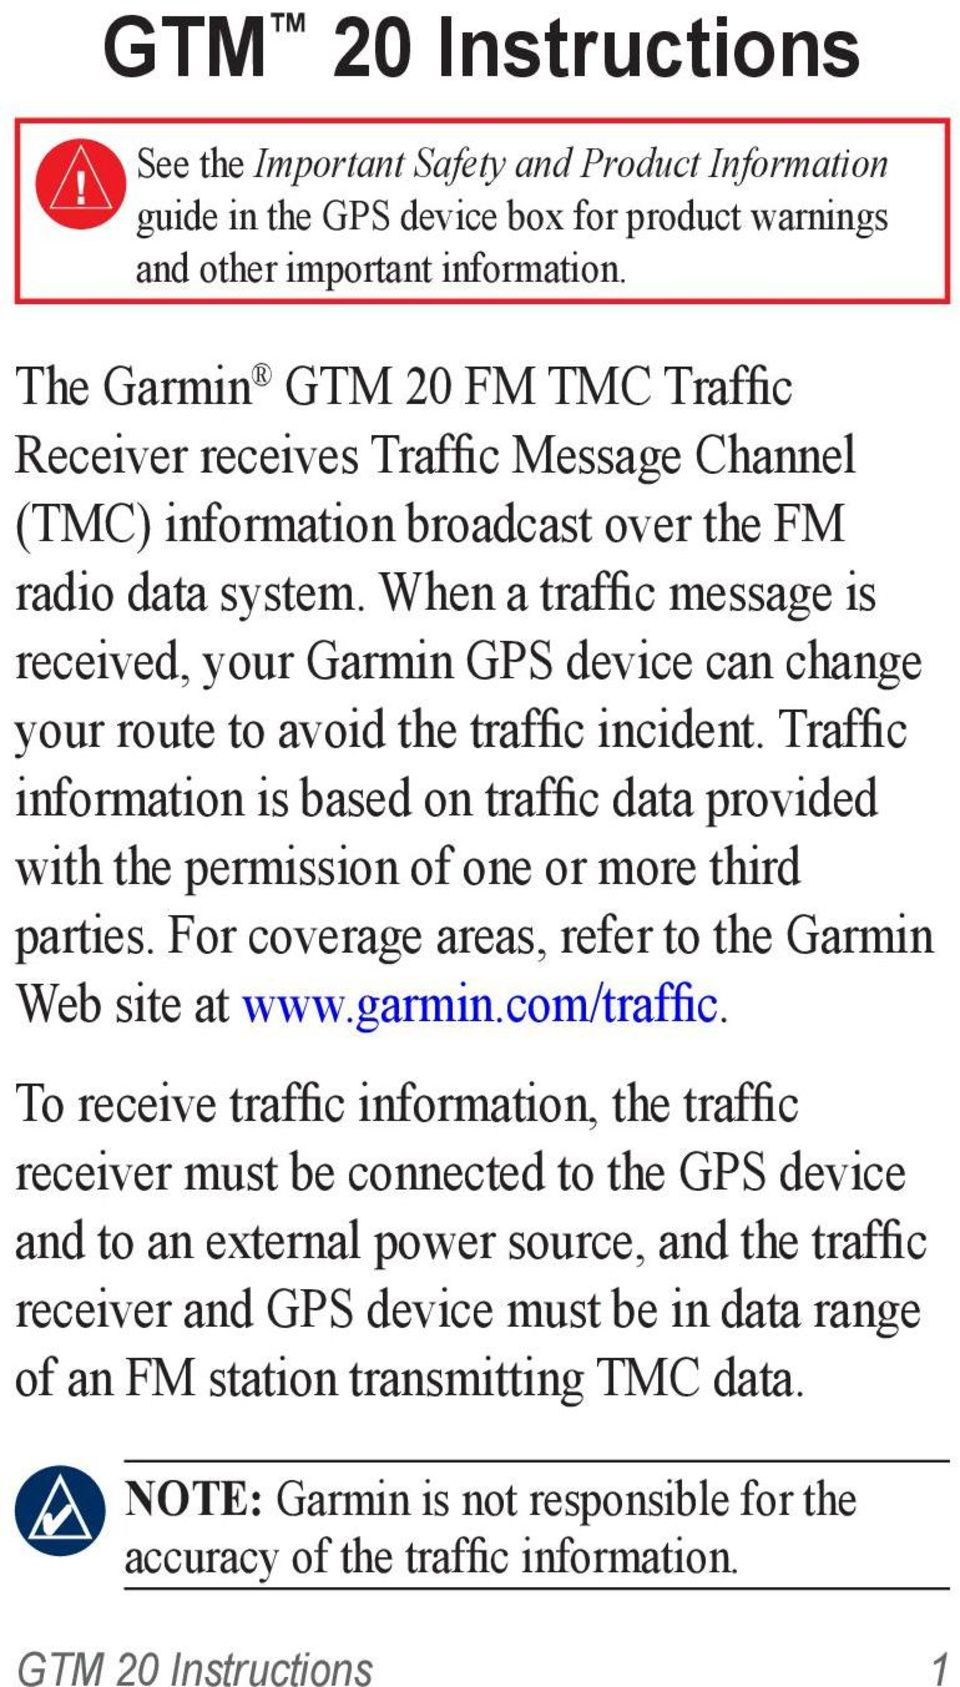 When a traffic message is received, your Garmin GPS device can change your route to avoid the traffic incident.